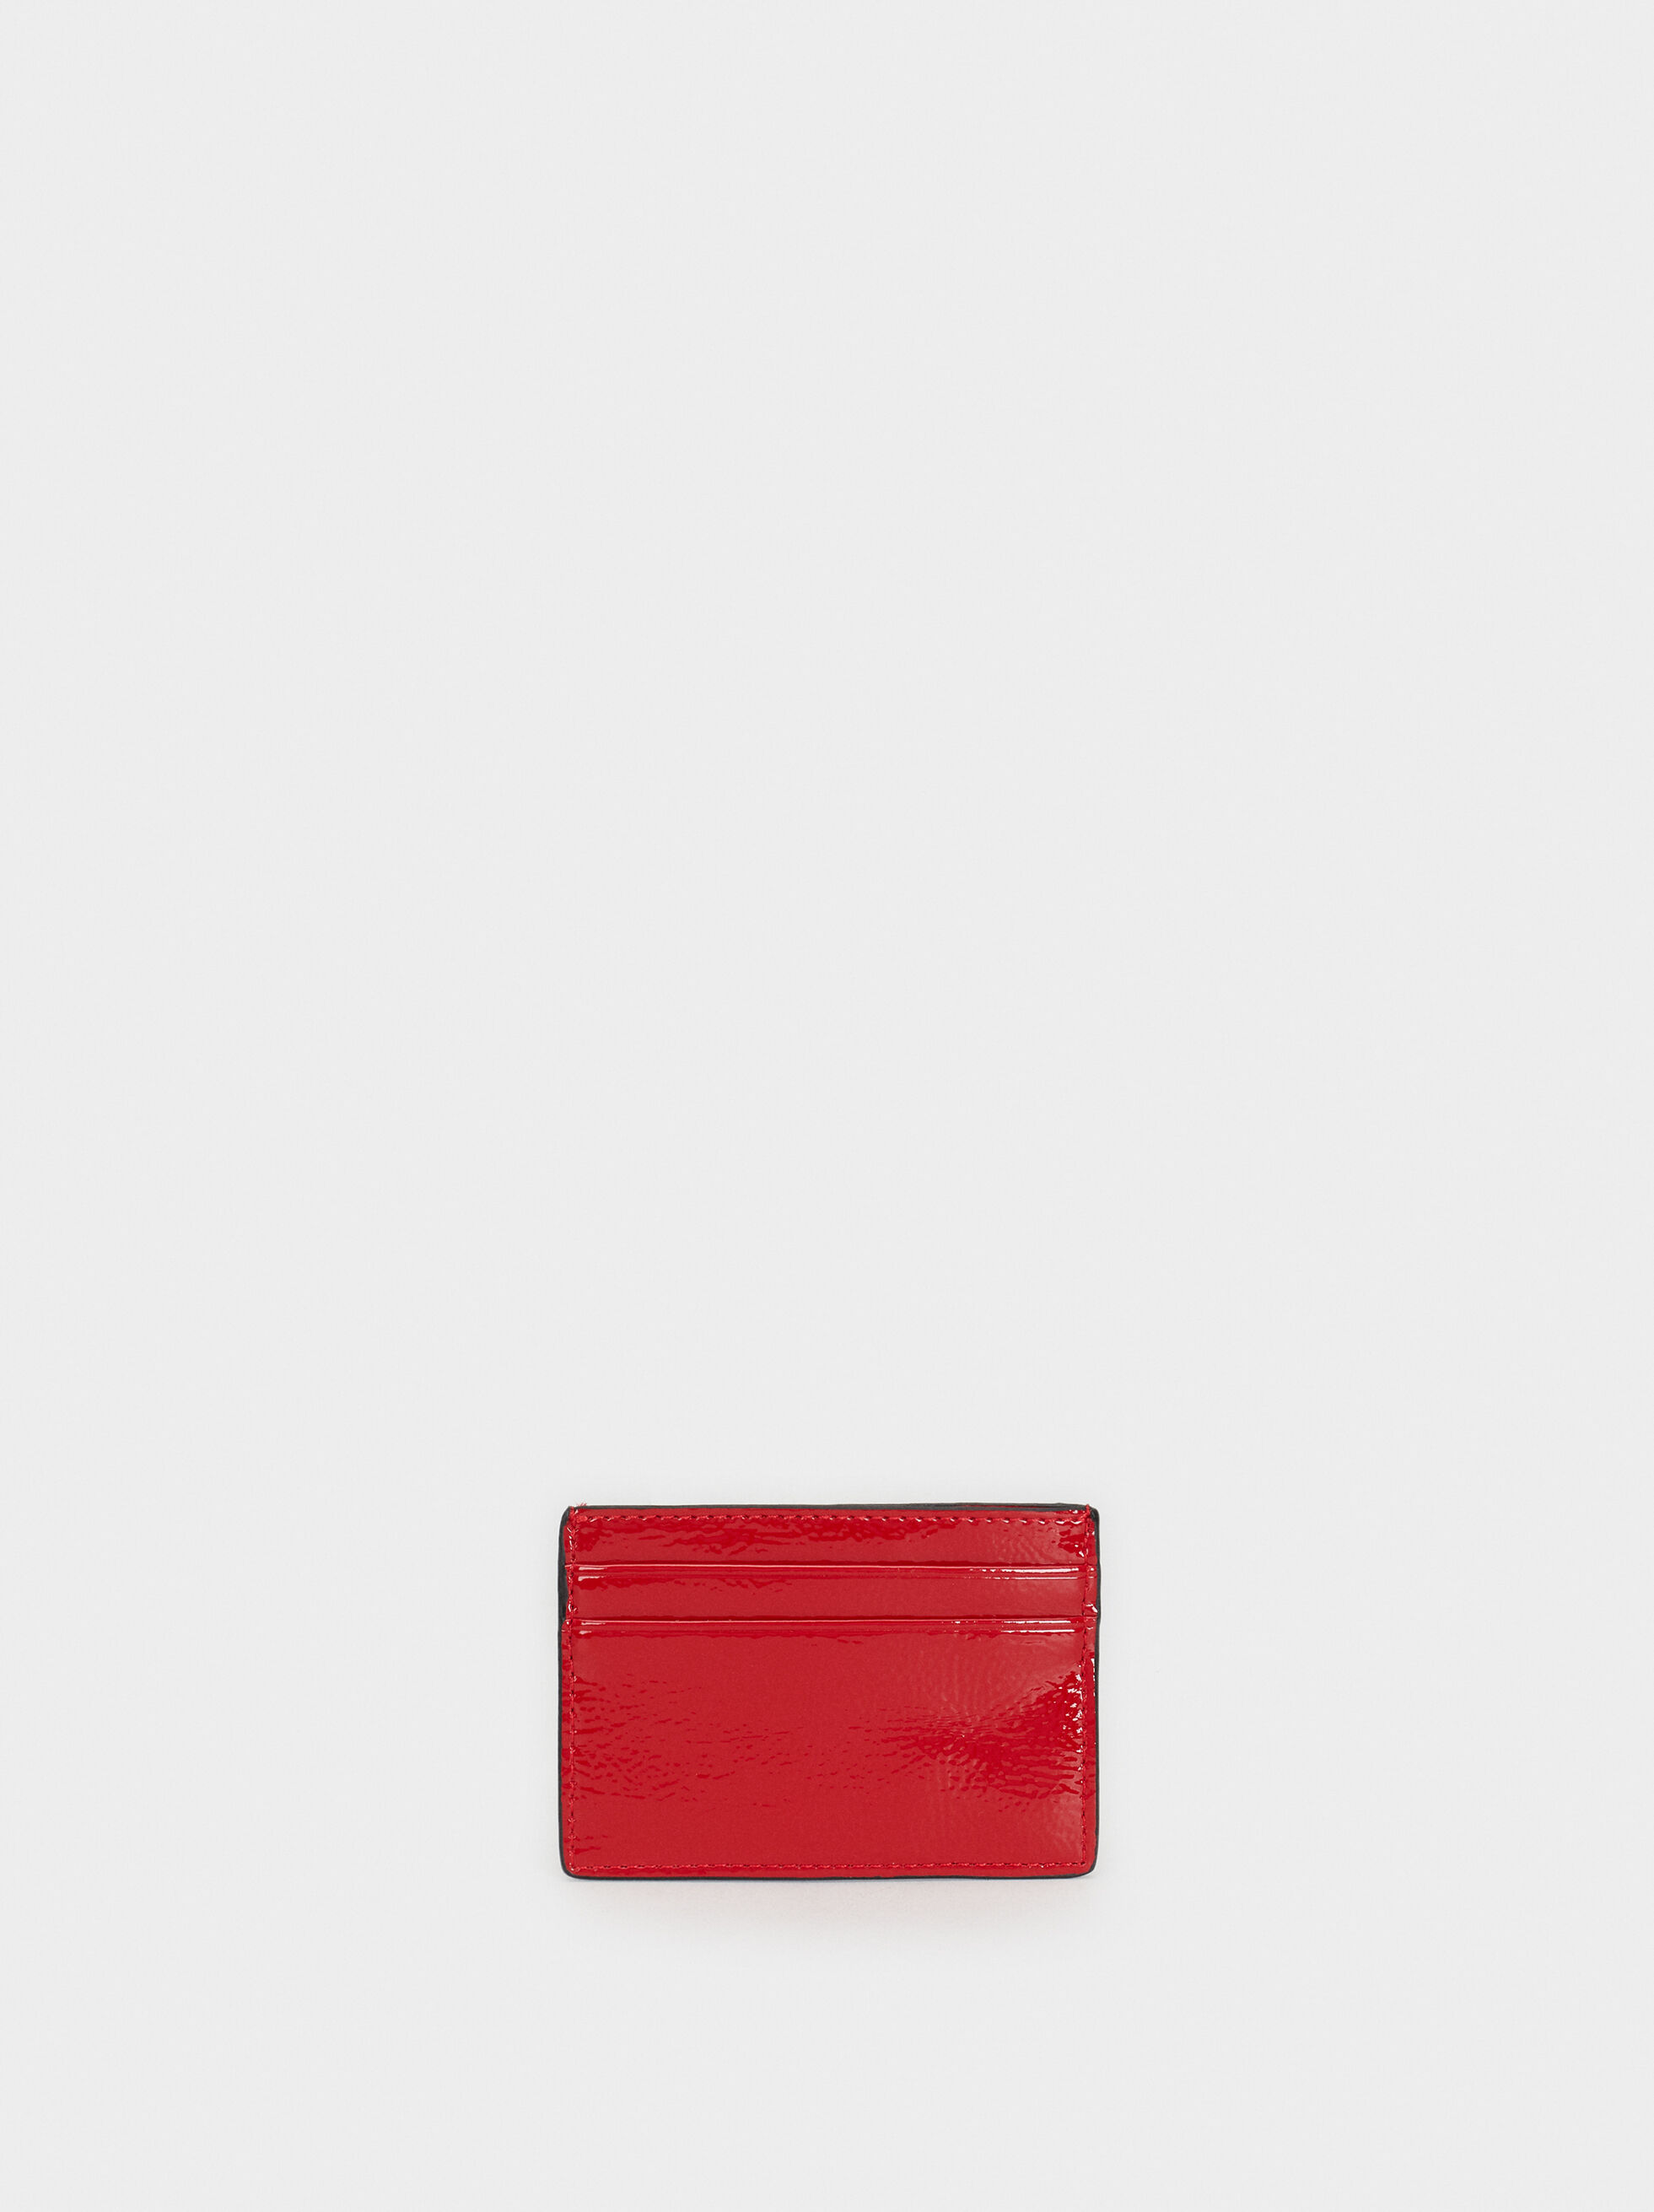 We Are Love Patent Finish Card Holder, Red, hi-res